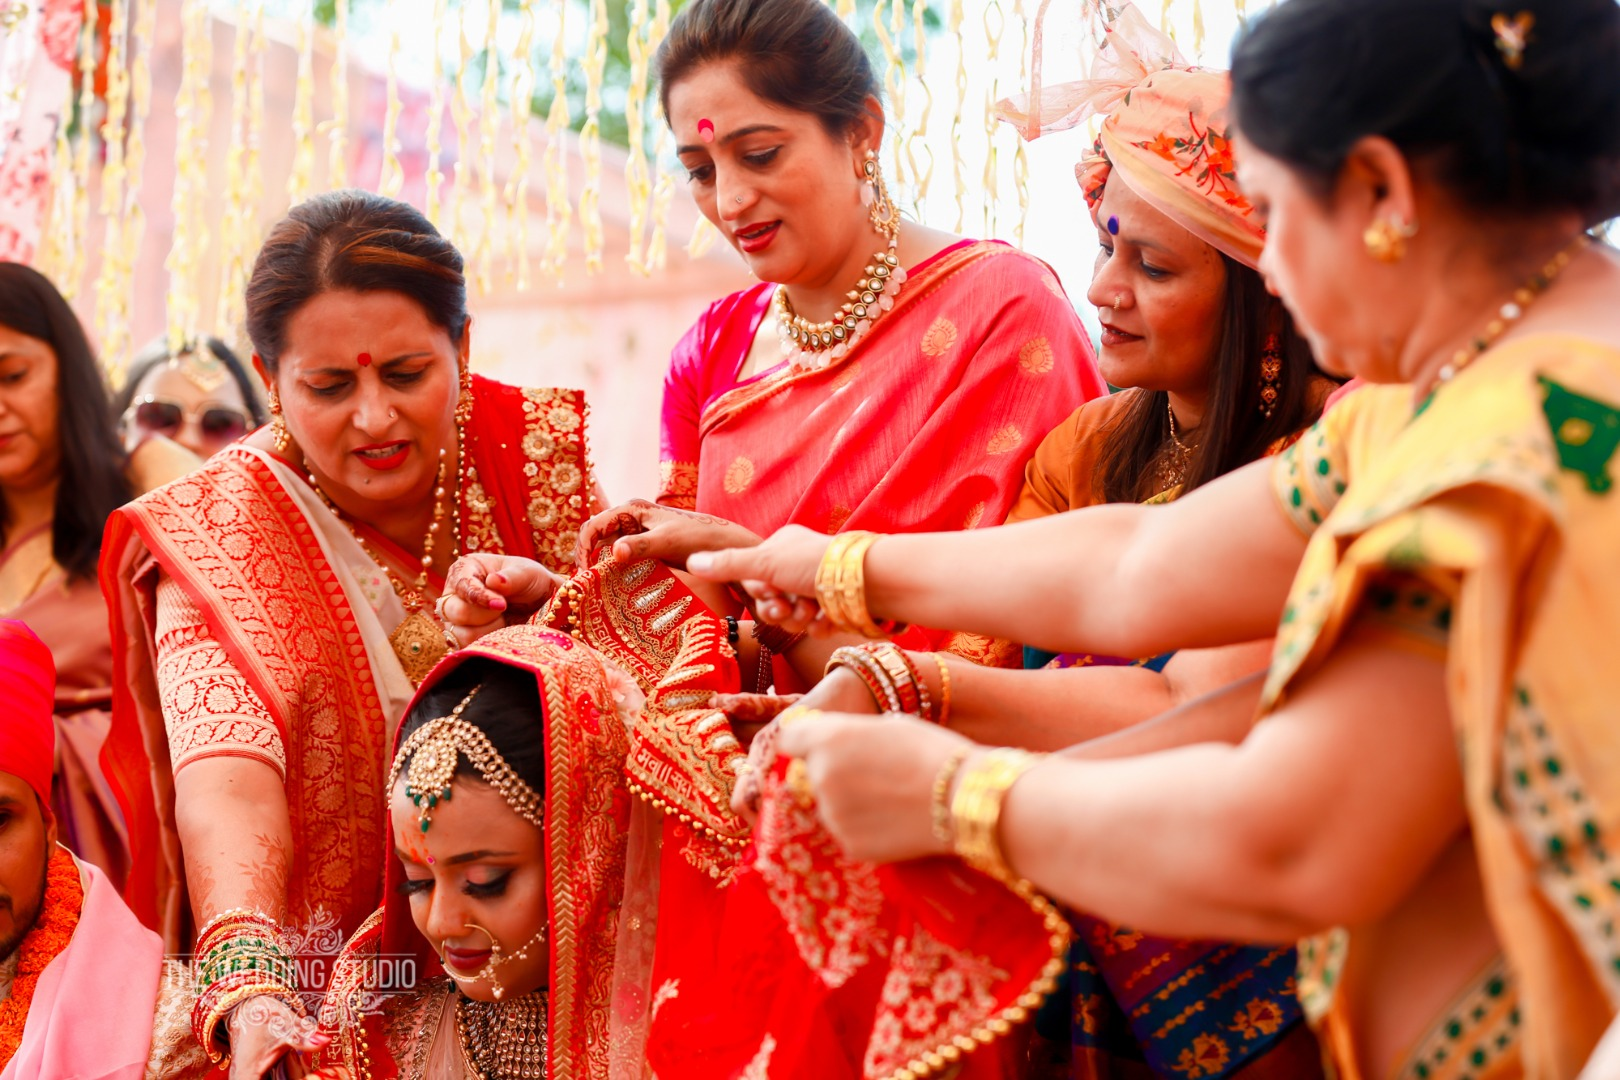 Rituals and Traditions in Indian Weddings